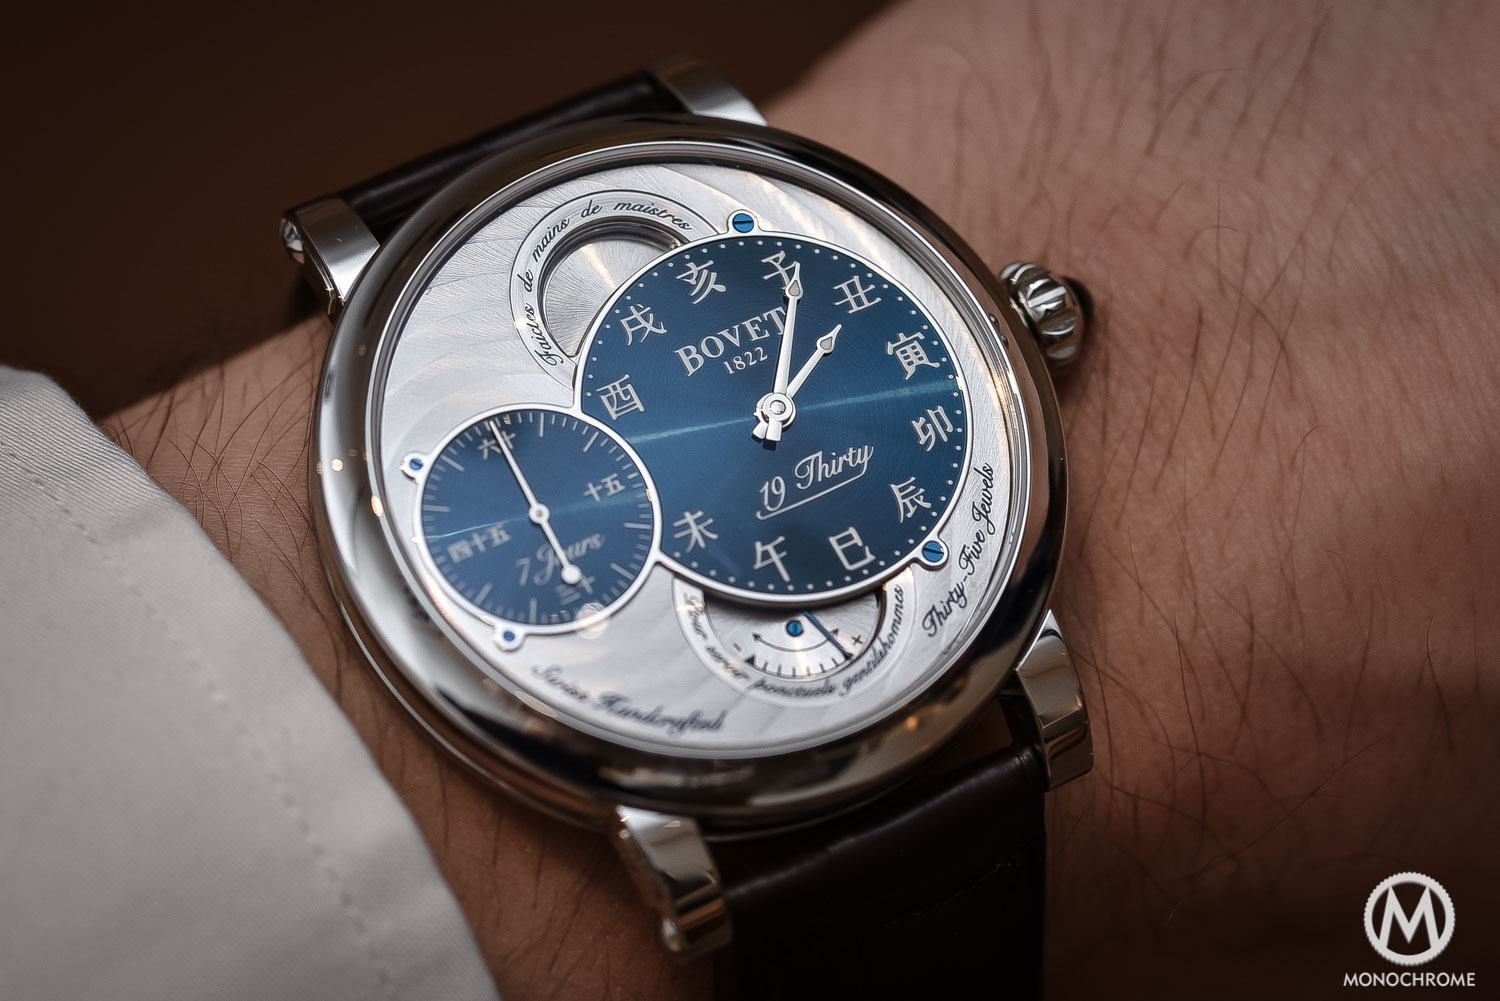 Bovet 19Thirty Dimier blue dial chinese numerals - 5